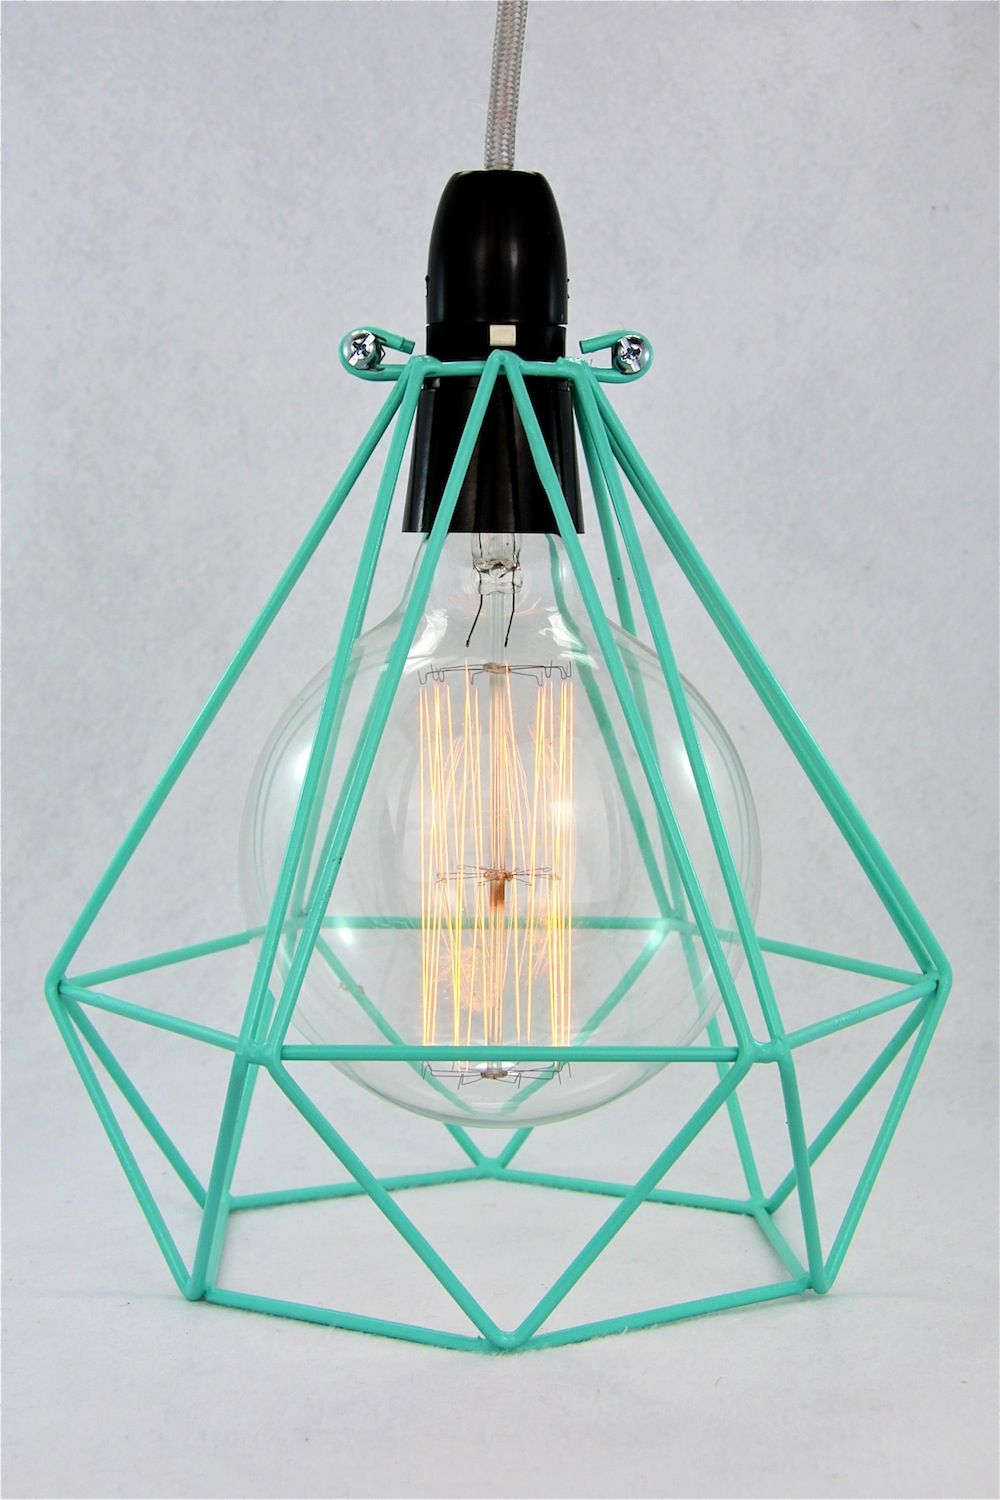 Diamond wire lamp Cage pendant cloth cord trouble light chandelier ...